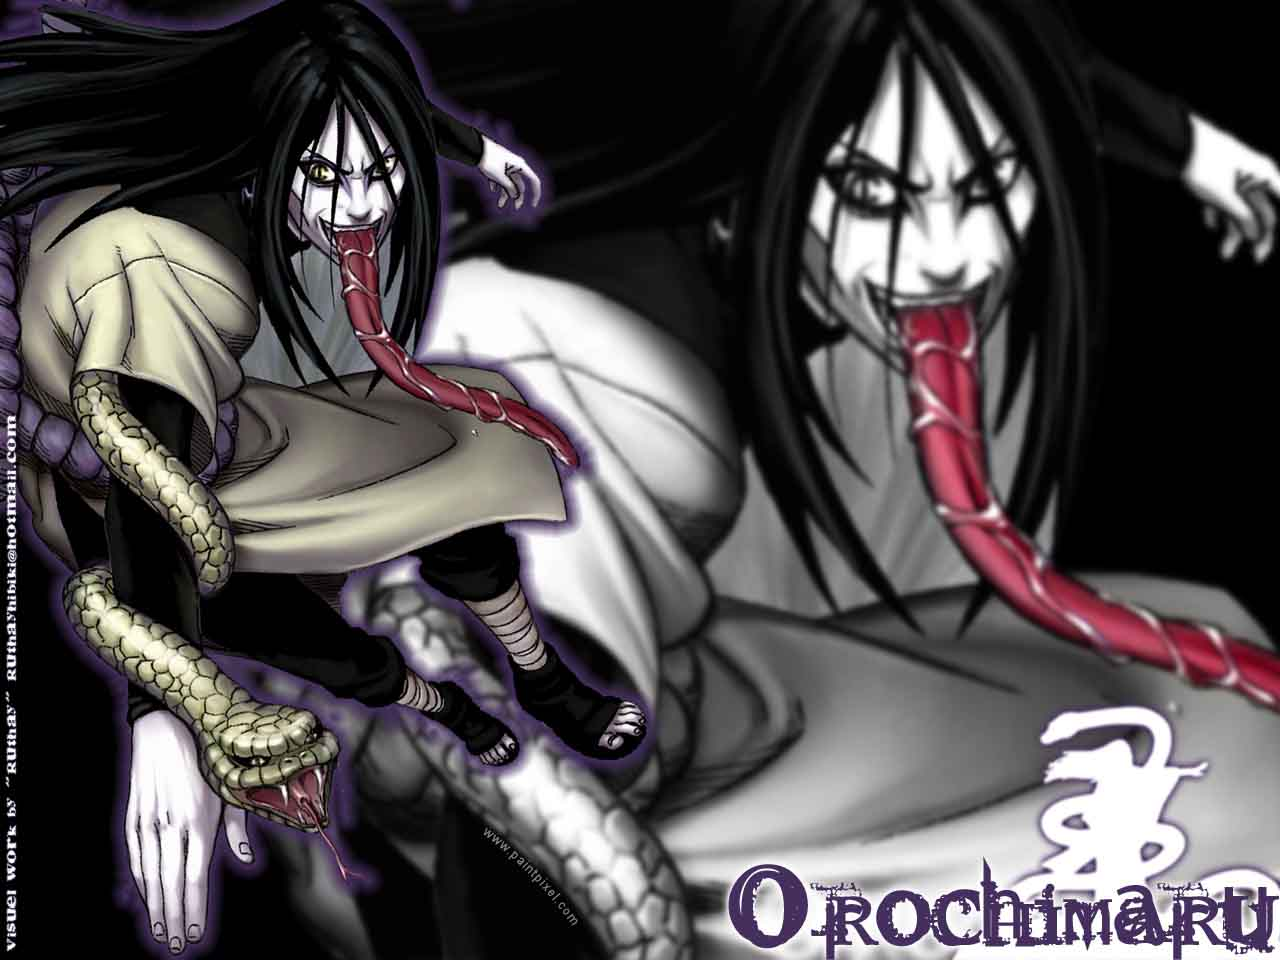 Orochimaru Best Anime Wallpaper